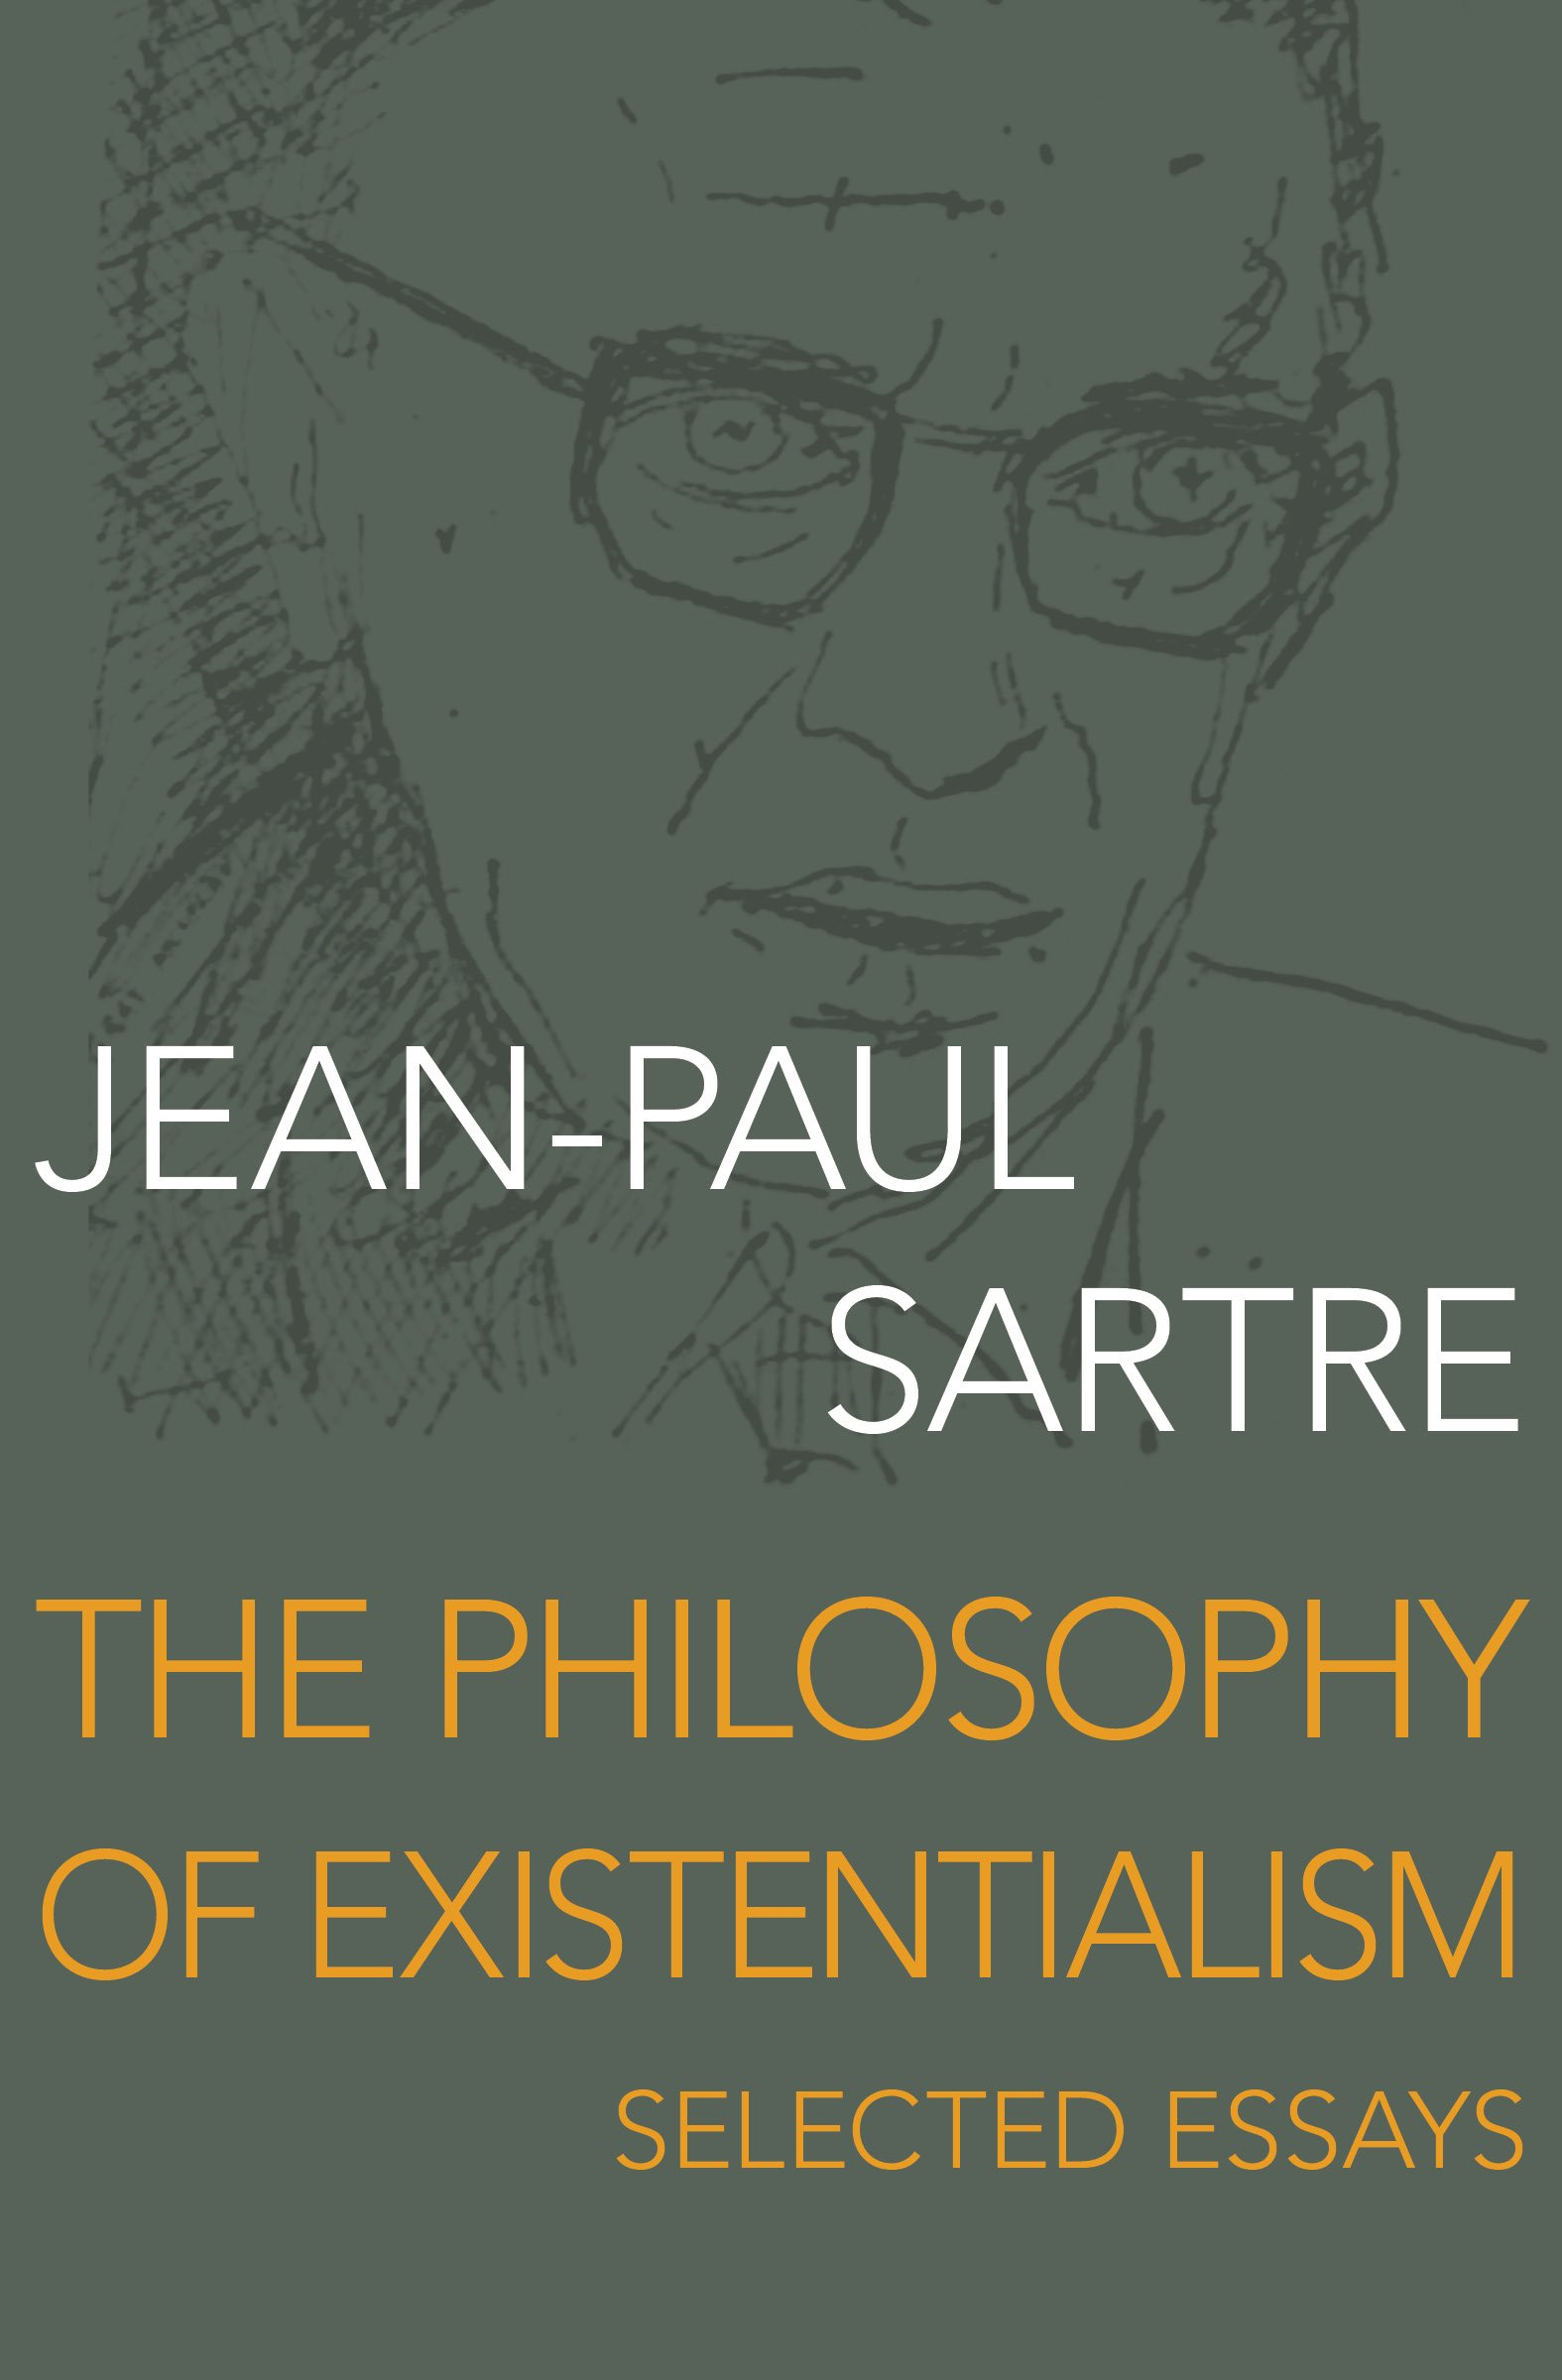 the philosophy of existentialism selected essays jean paul the philosophy of existentialism selected essays jean paul sartre 9781480444560 amazon com books